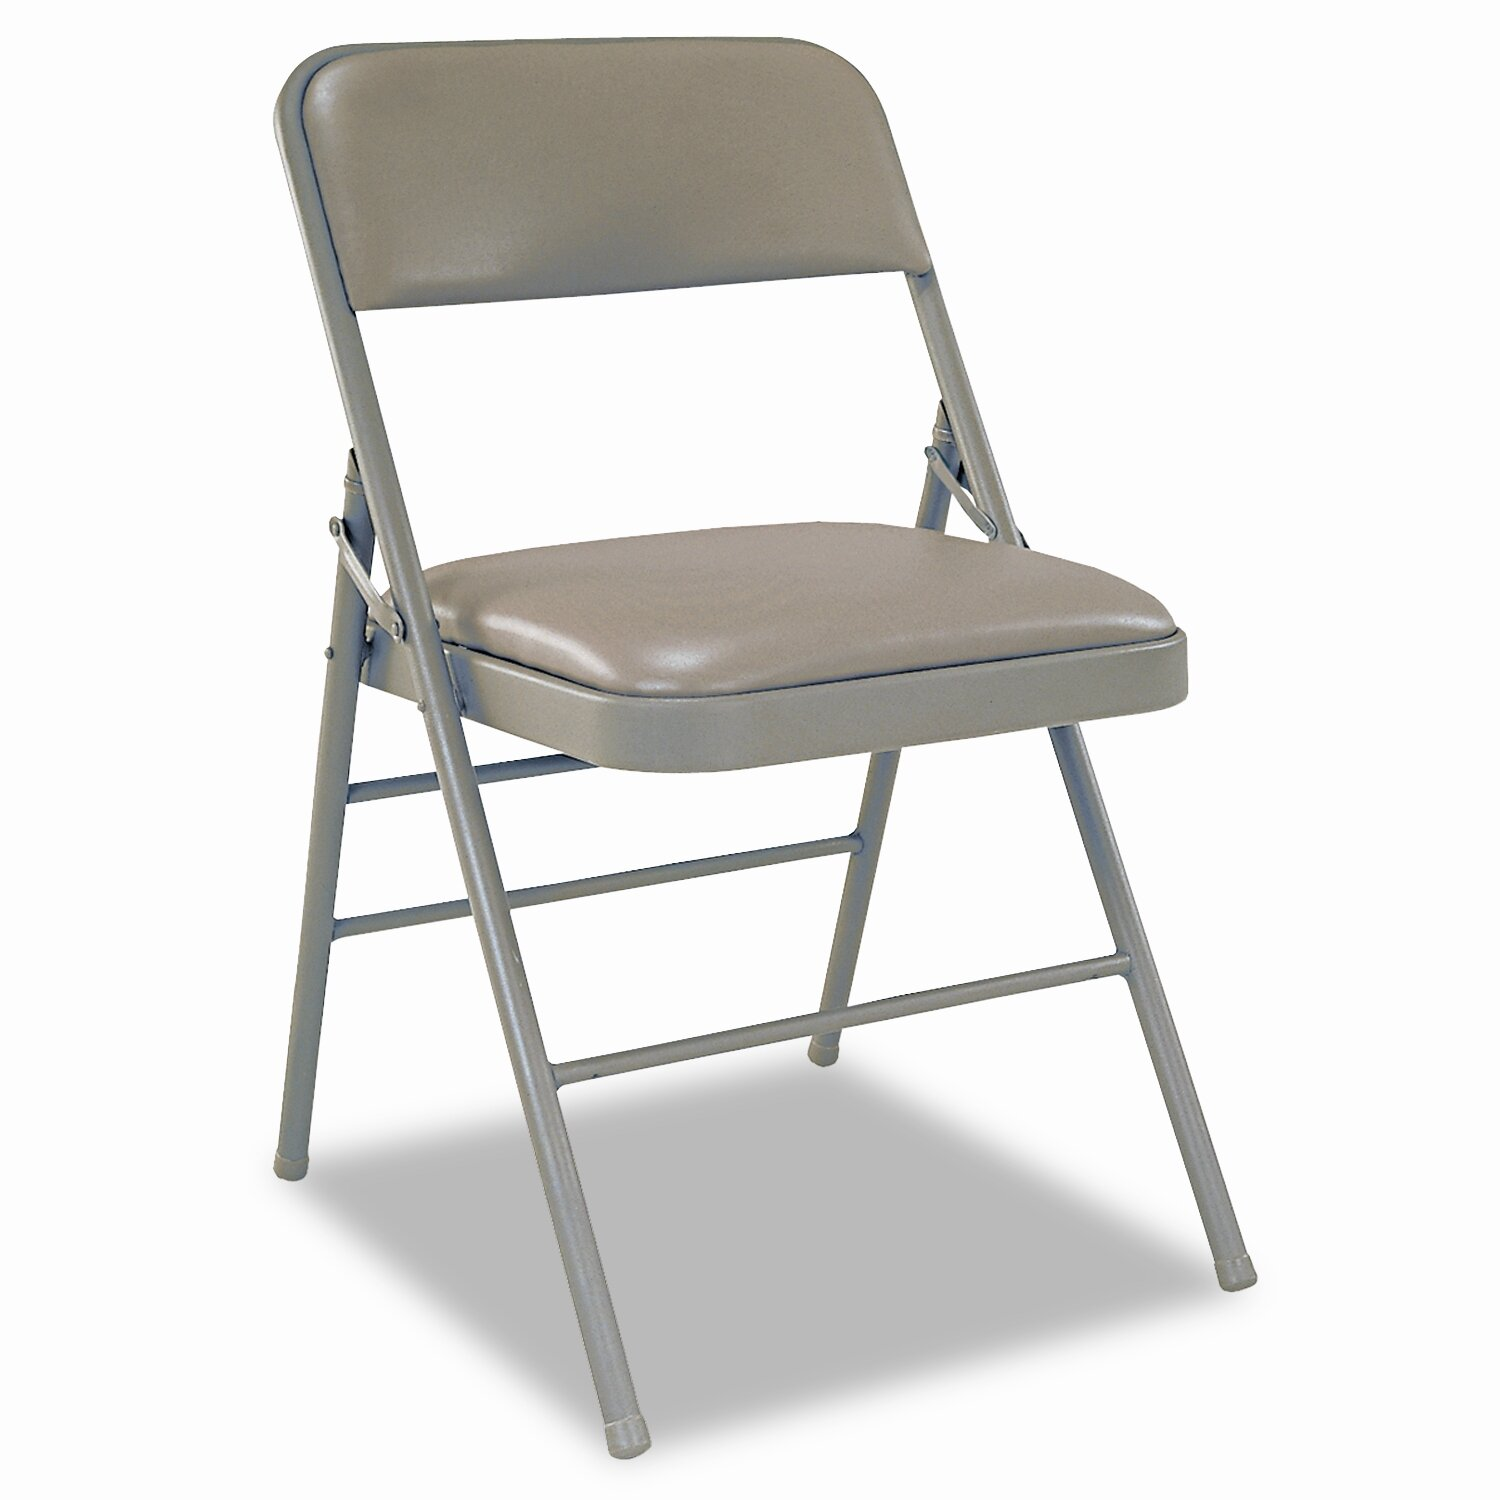 Cosco Deluxe Vinyl Padded Seat and Back Folding Chairs Taupe